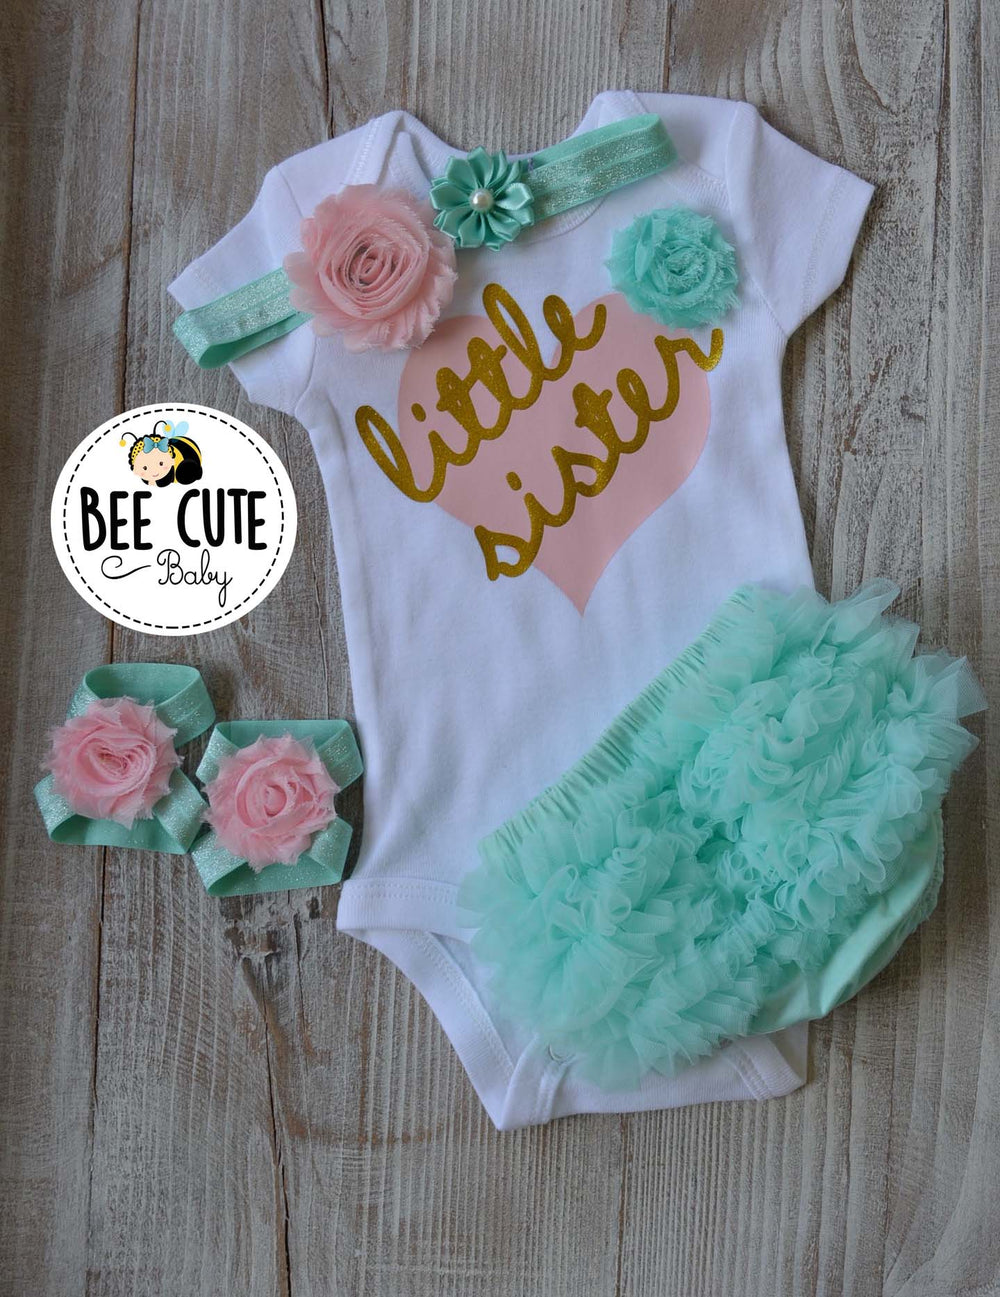 Little Sister Baby outfit - beecutebaby